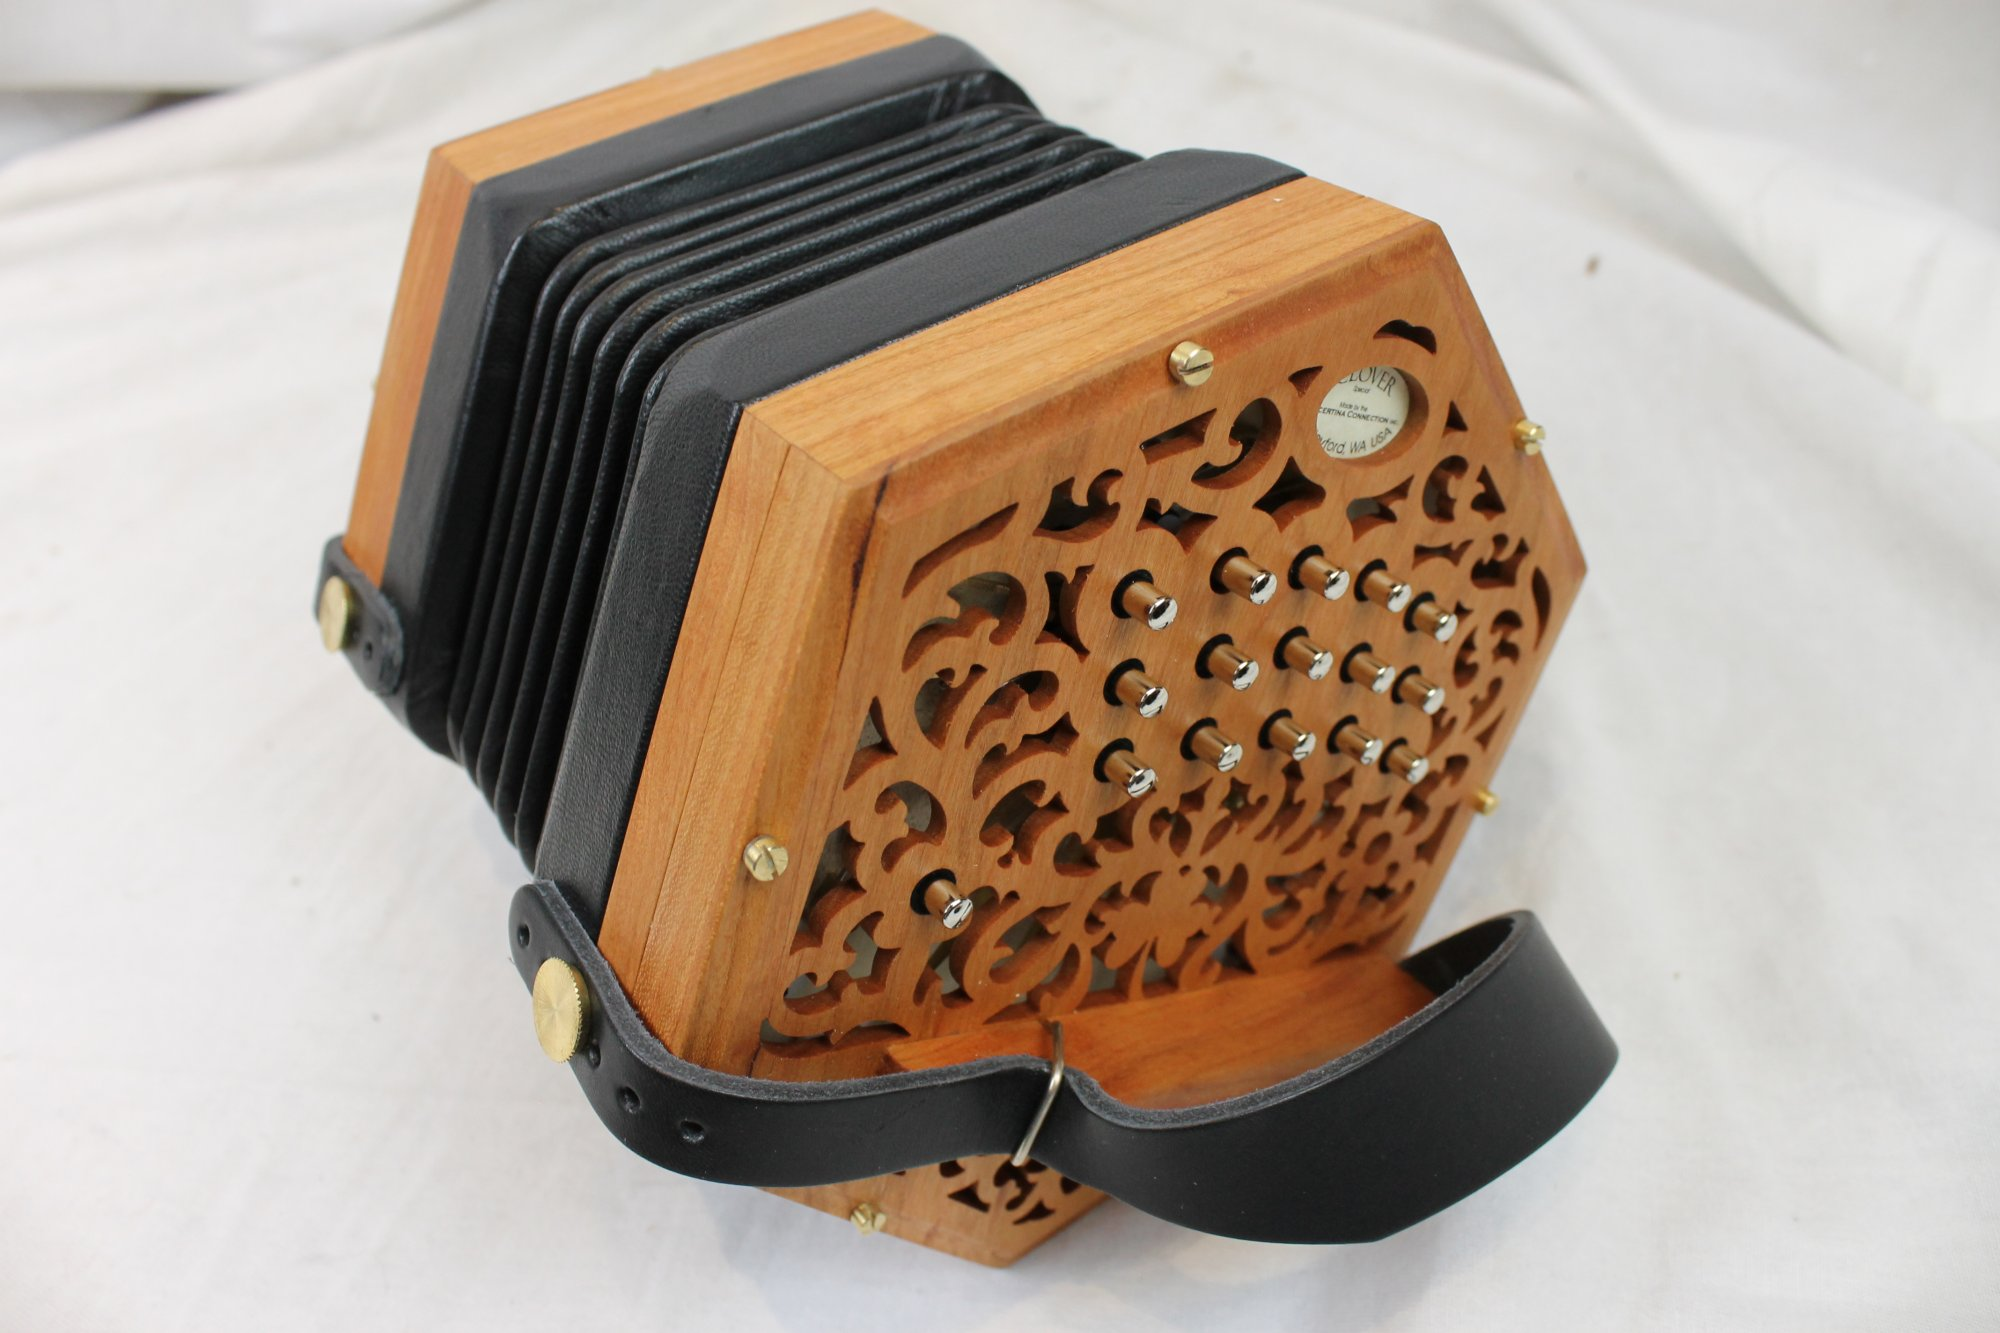 New Cherry Concertina Connection Clover Anglo Concertina CG 30